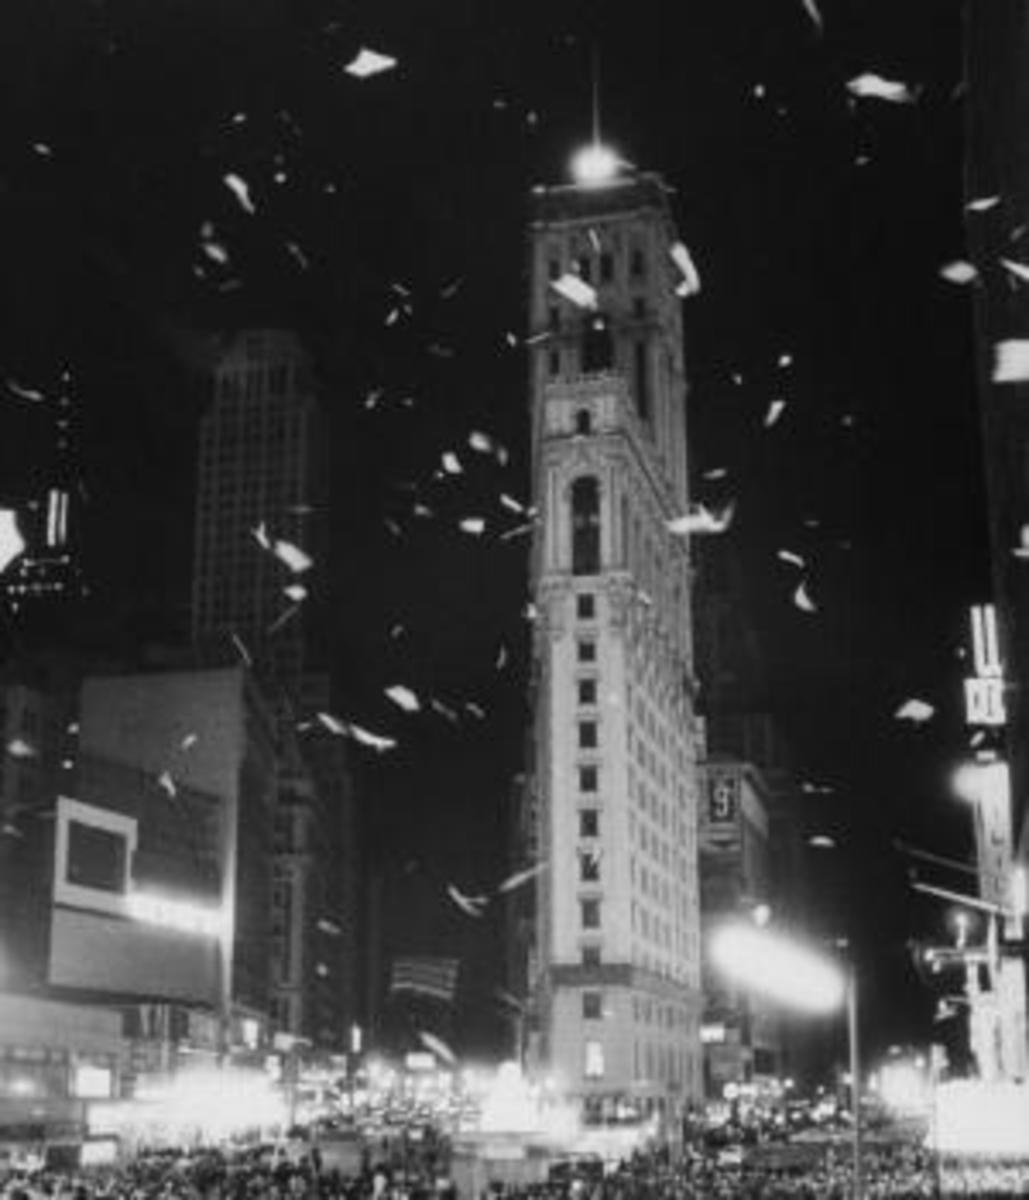 Crowds of people gather in Times Square to celebrate New Year's Eve. (Credit: Truman Moore/The LIFE Images Collection/Getty Images)